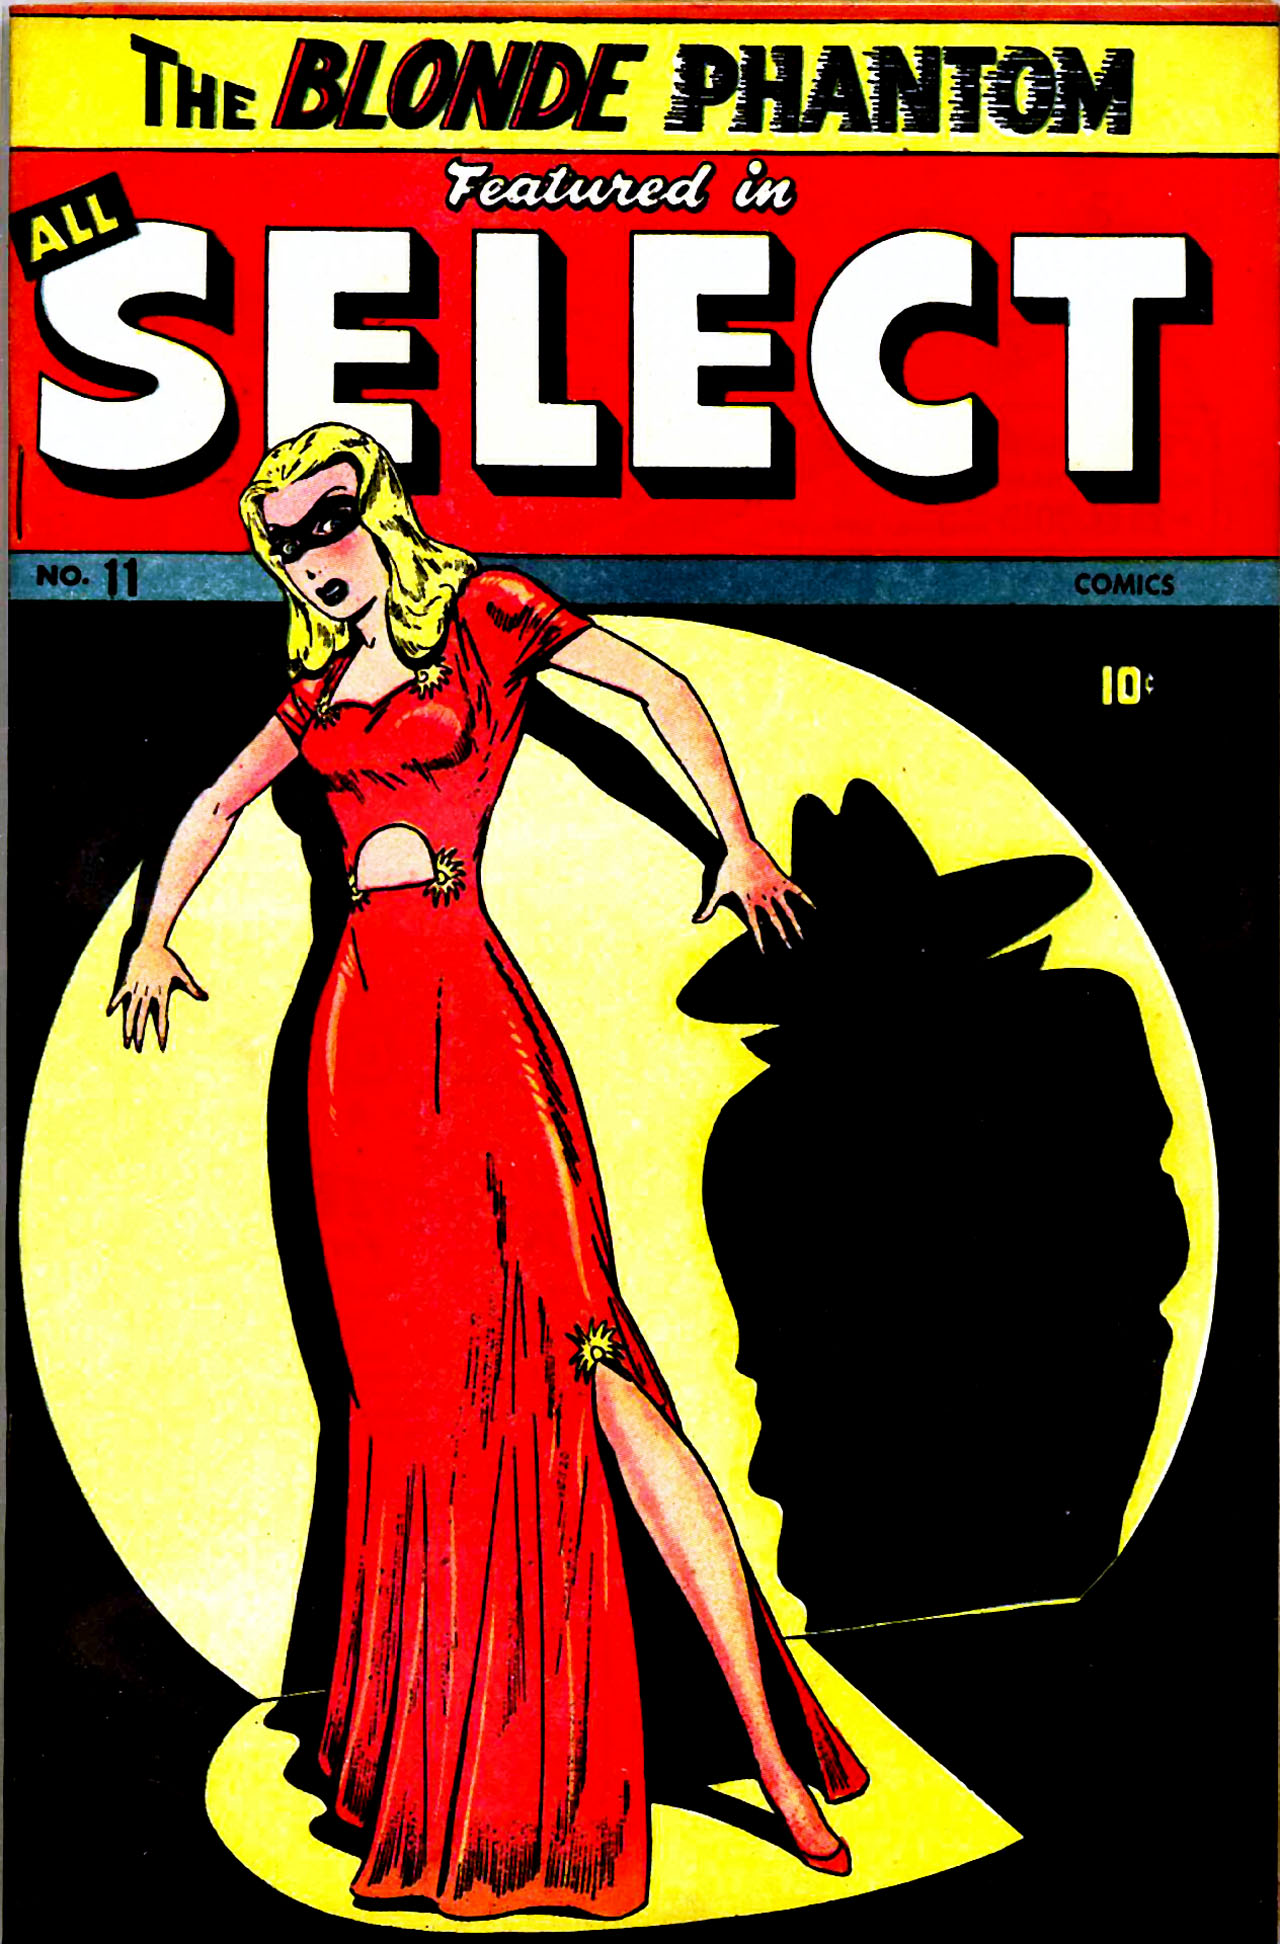 Read online All-Select Comics comic -  Issue #11 - 1